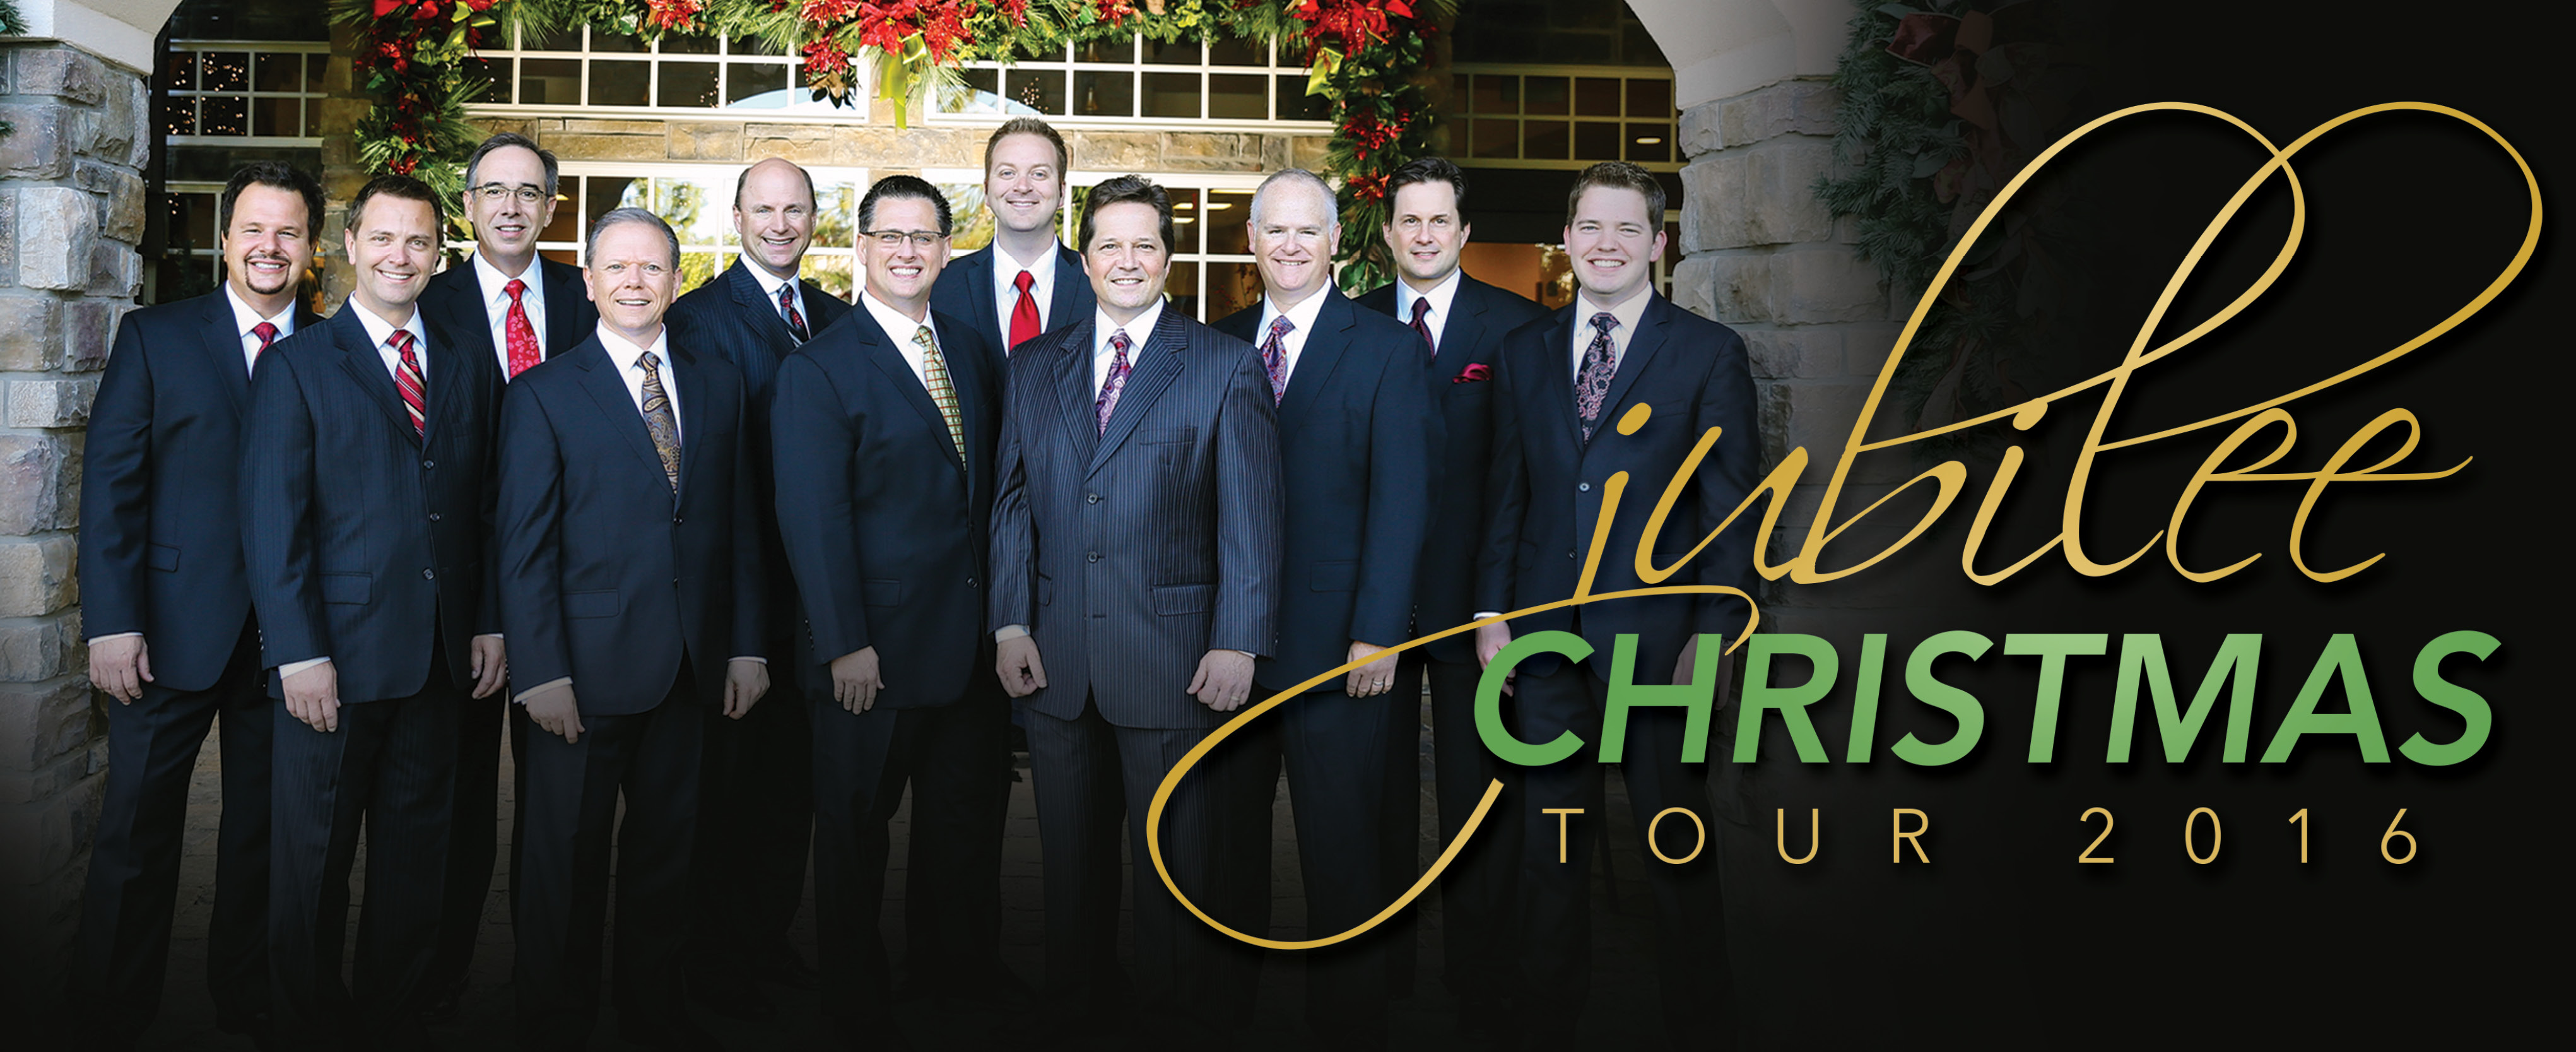 IMC Management Set To Kick Off 2016 Jubilee Christmas Tour